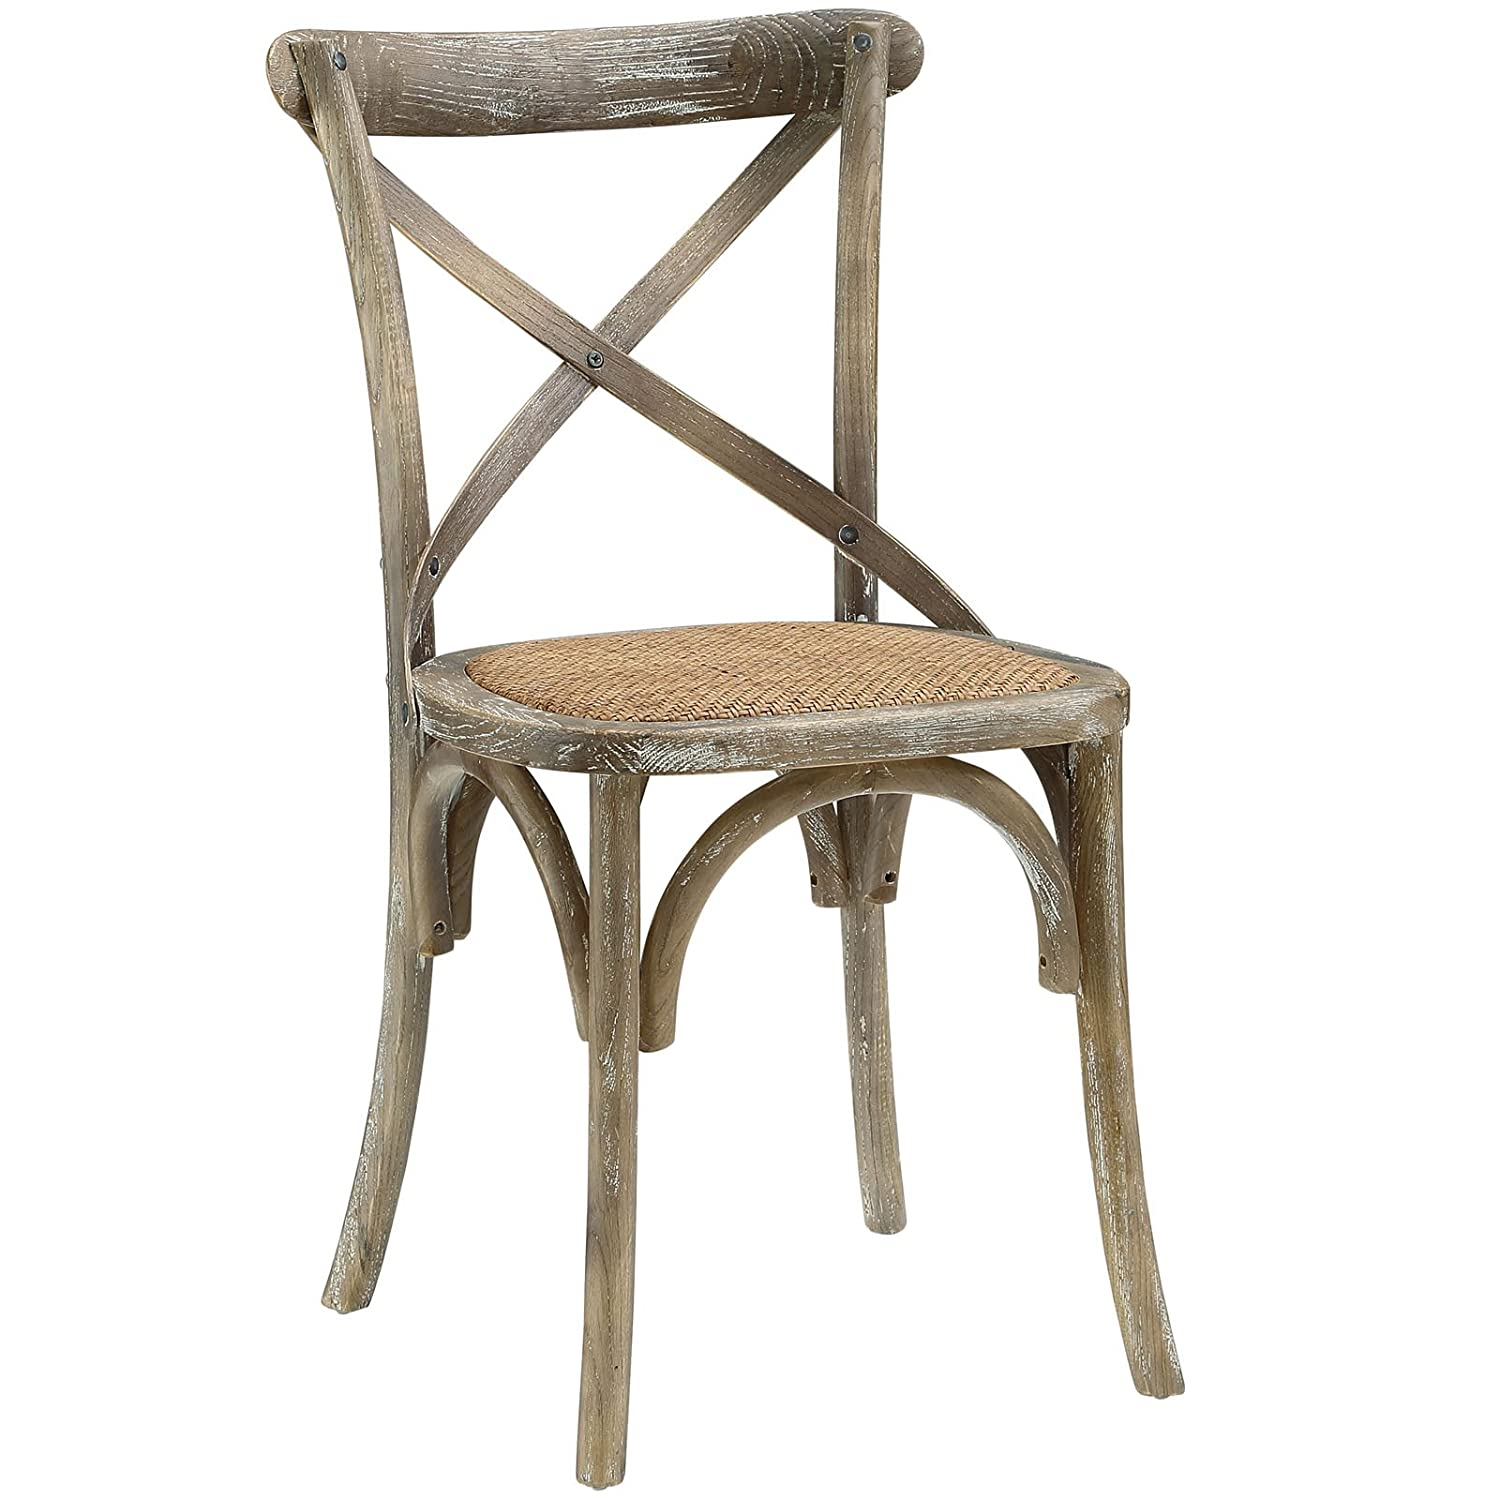 Cross back farmhouse style elm wood dining chair.